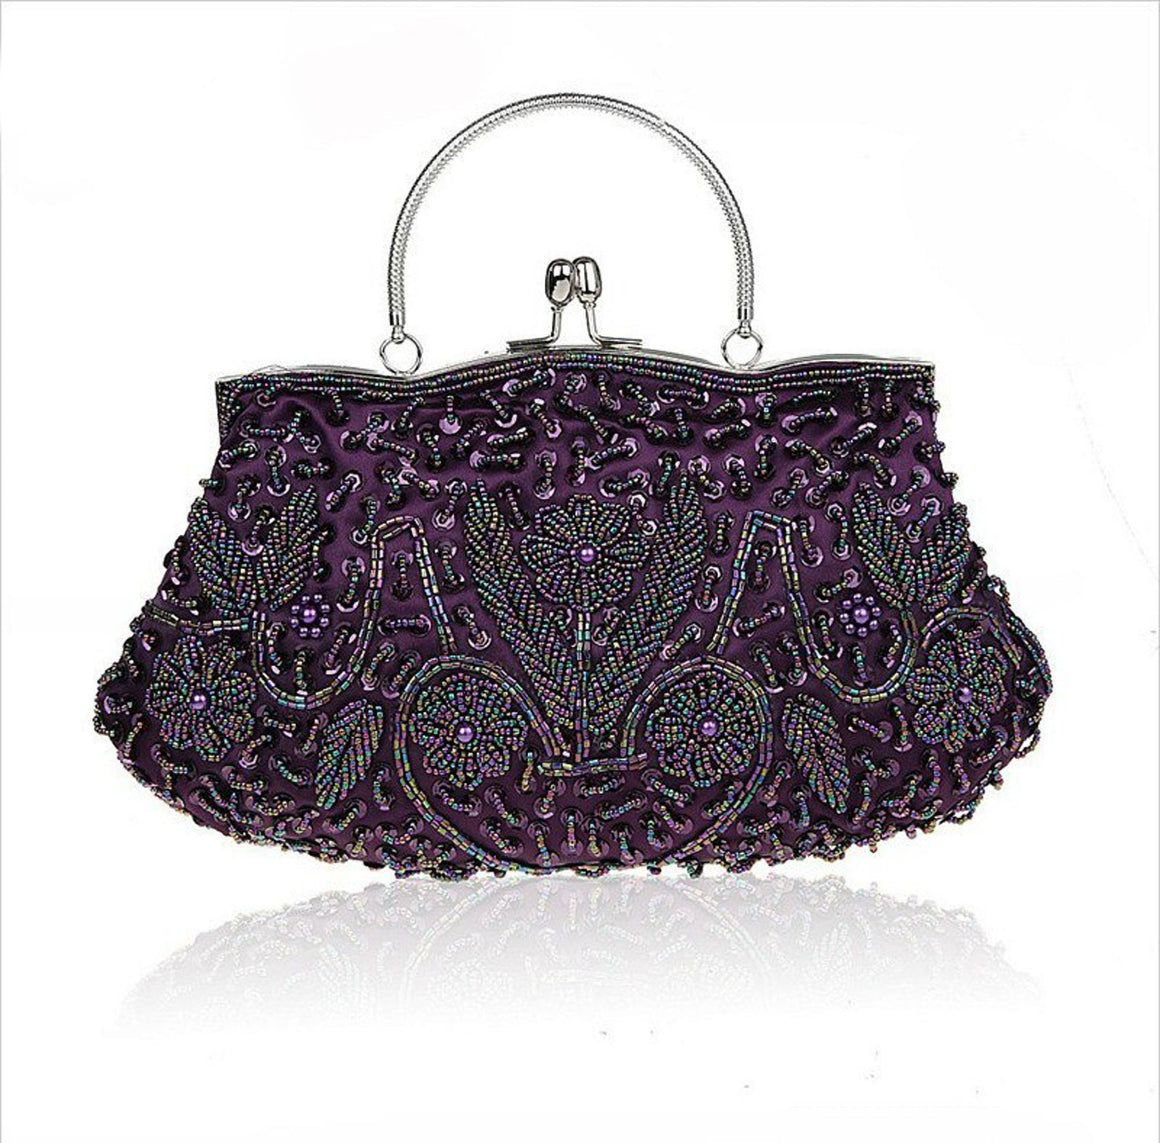 Purple Chinese Women's Beaded Sequined Wedding Evening Bag Clutch handbag Bride Party Purse Makeup Bag Free Shipping 03393-B